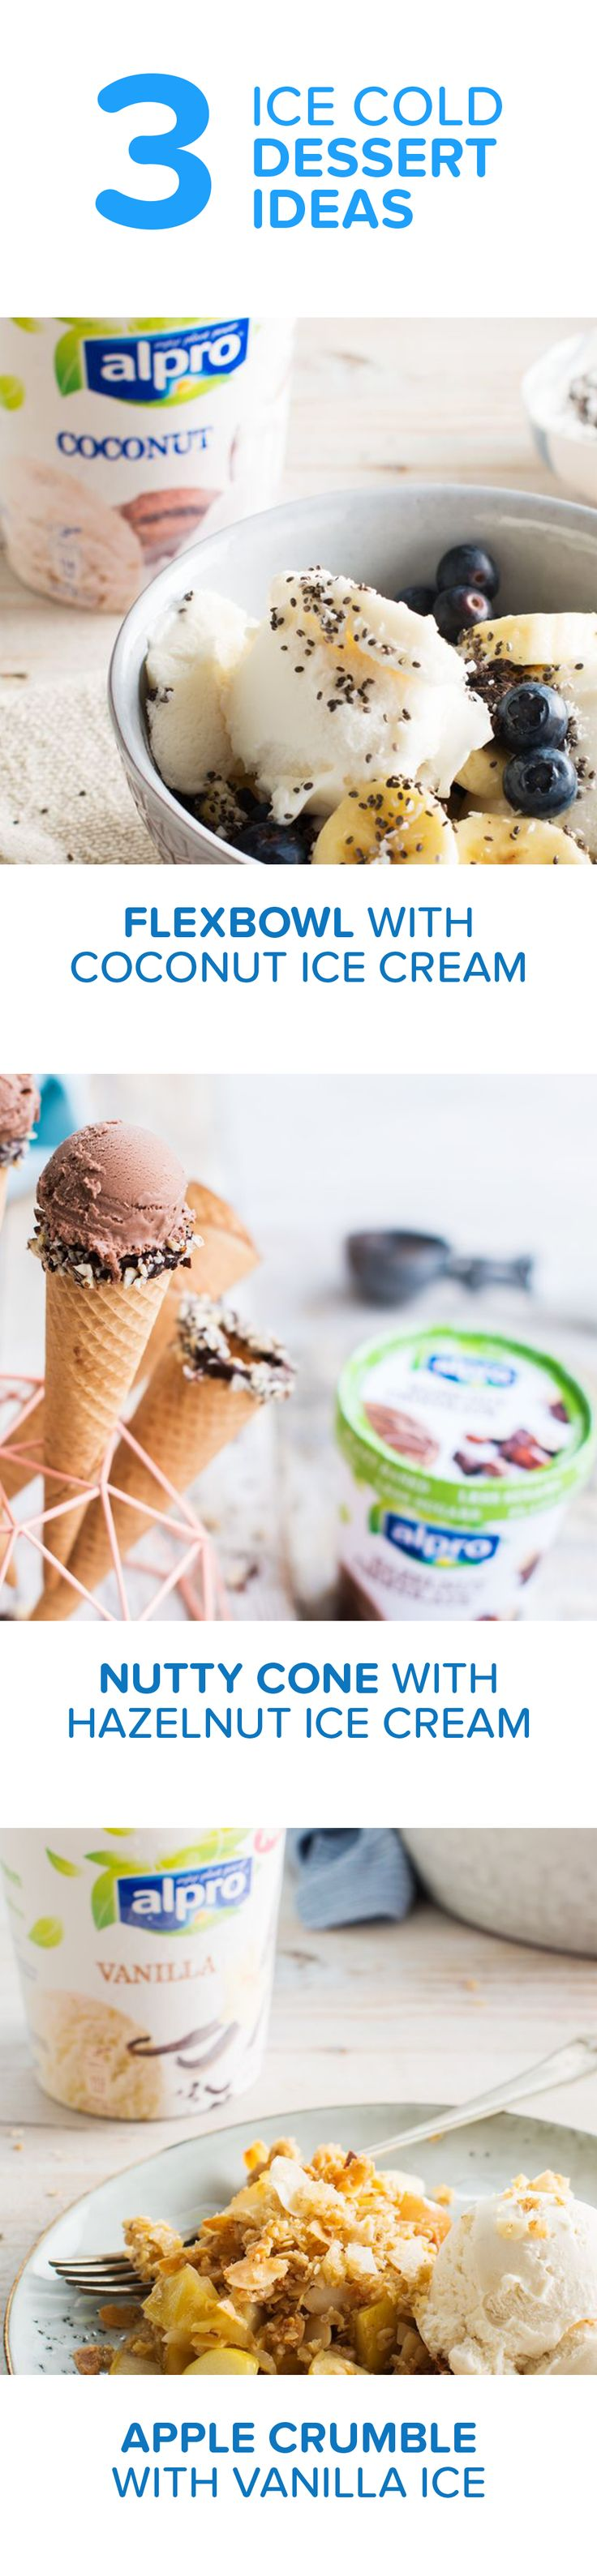 Vanilla, coconut, hazelnut chocolate – the choice is yours. Add Alpro Ice Cream to crumble, top with berries, or enjoy from a nutty cone. The tasty dessert options are endless…